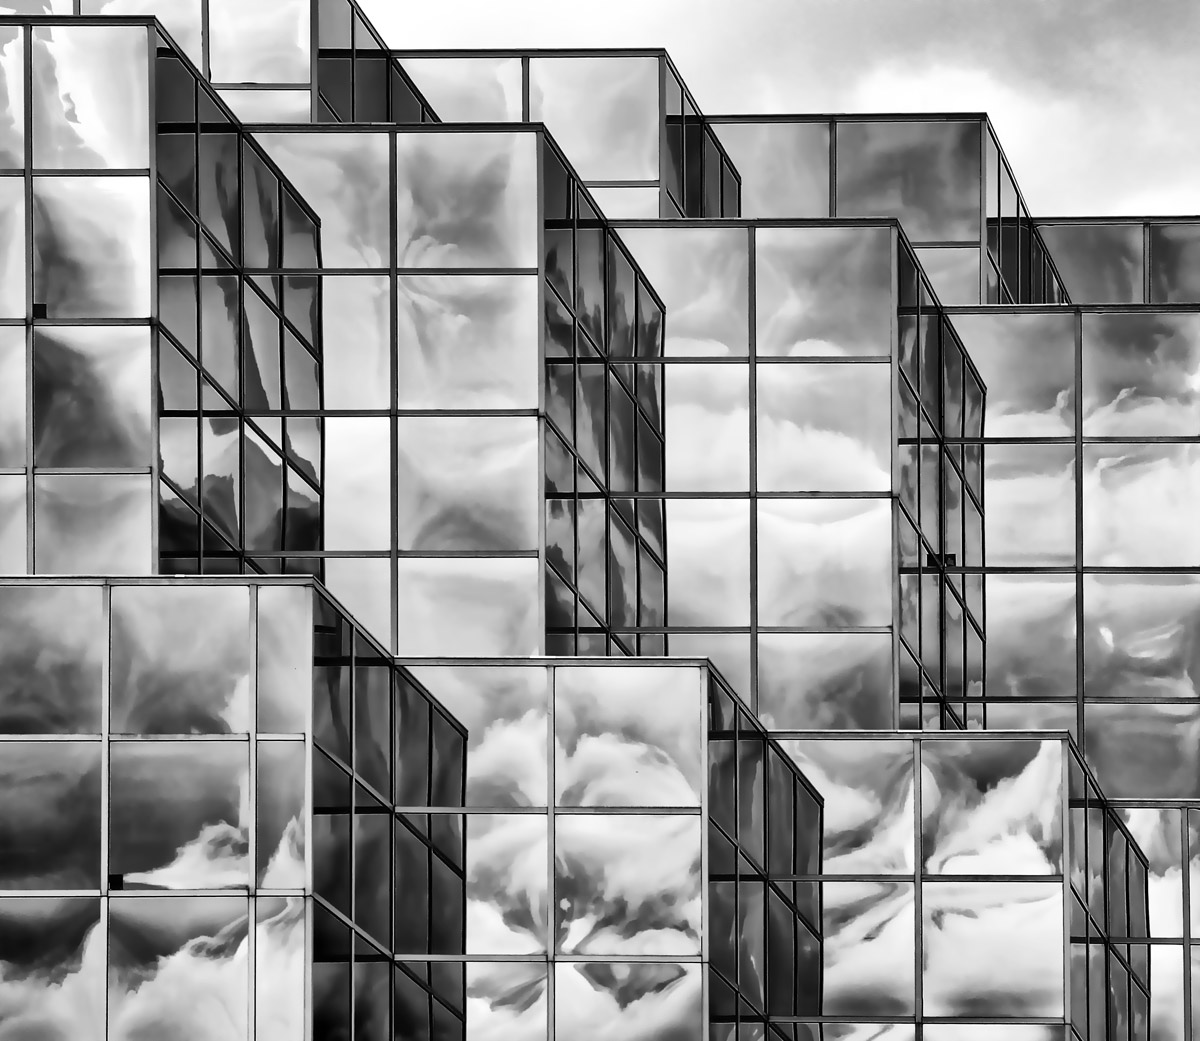 Cloudy Day - Glass building reflecting clouds - black and white